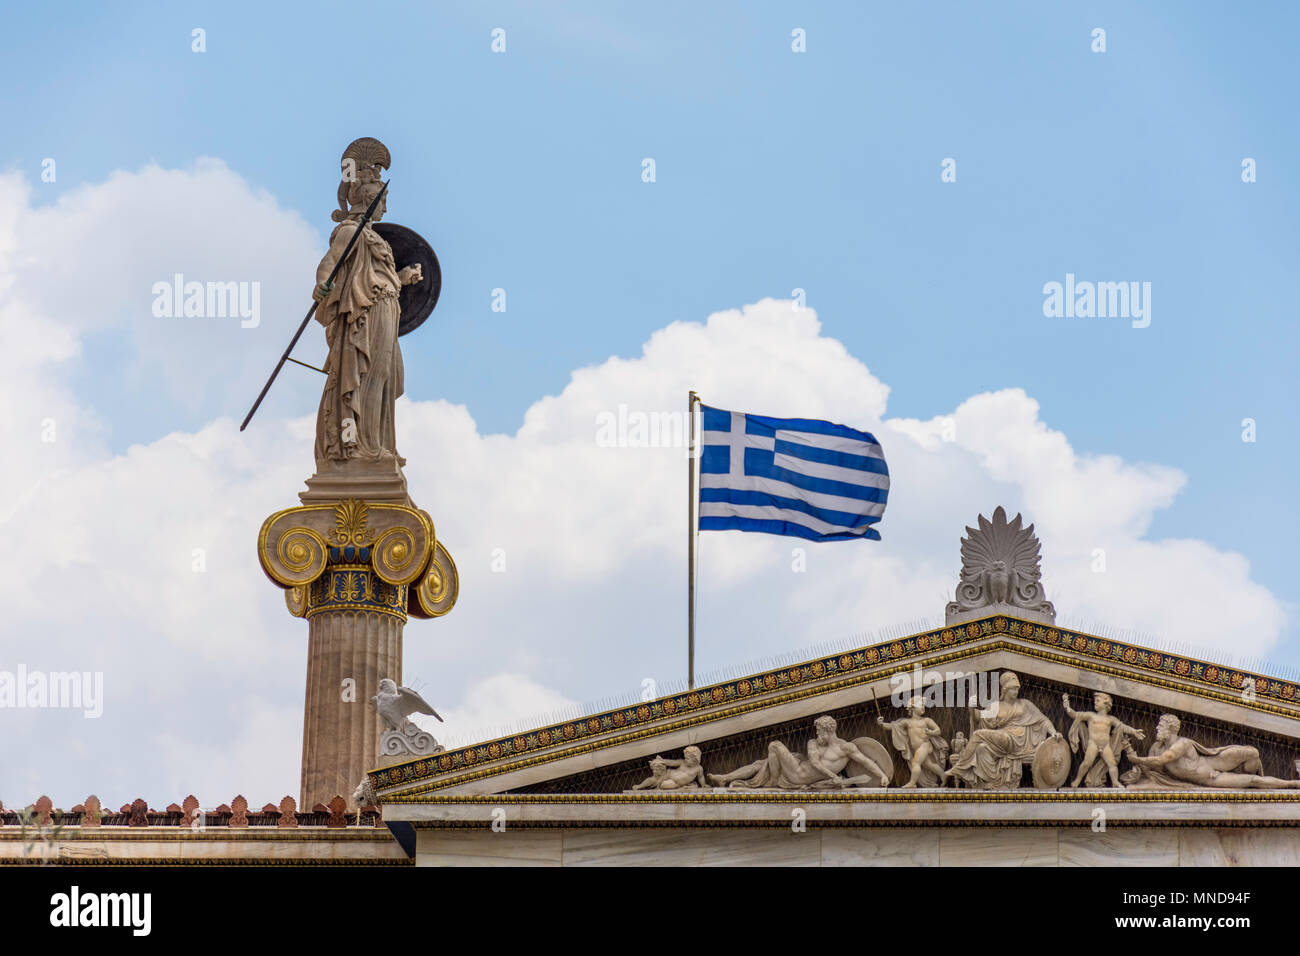 Statue Of Athena at Academy of Athens, Greece - Stock Image